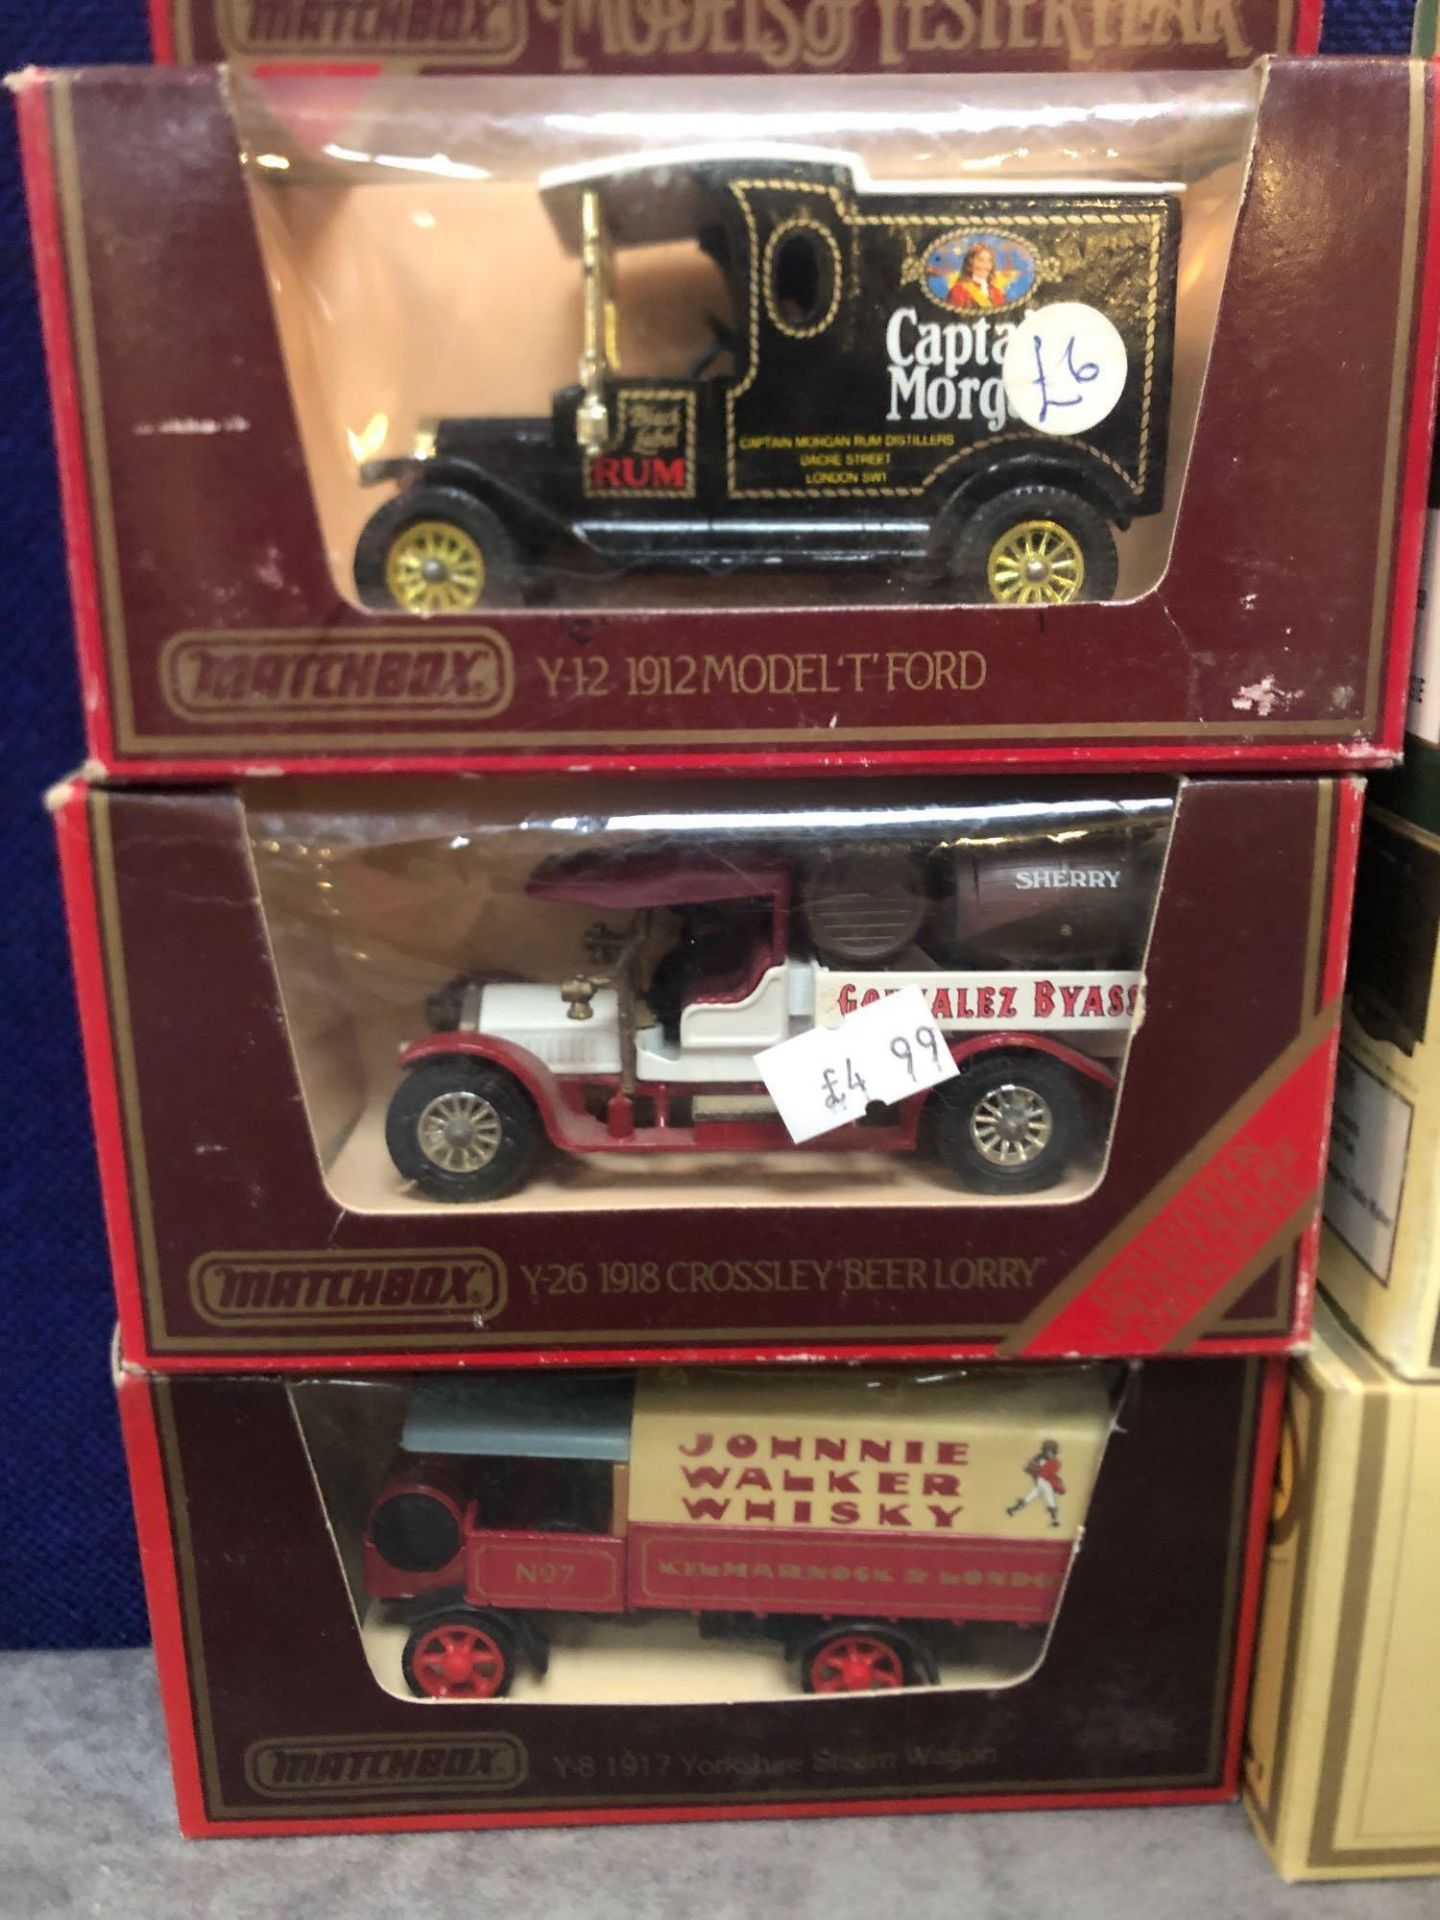 9x Diecast Vehicles All Advertising Drinks In Separate Boxes. - Image 2 of 4